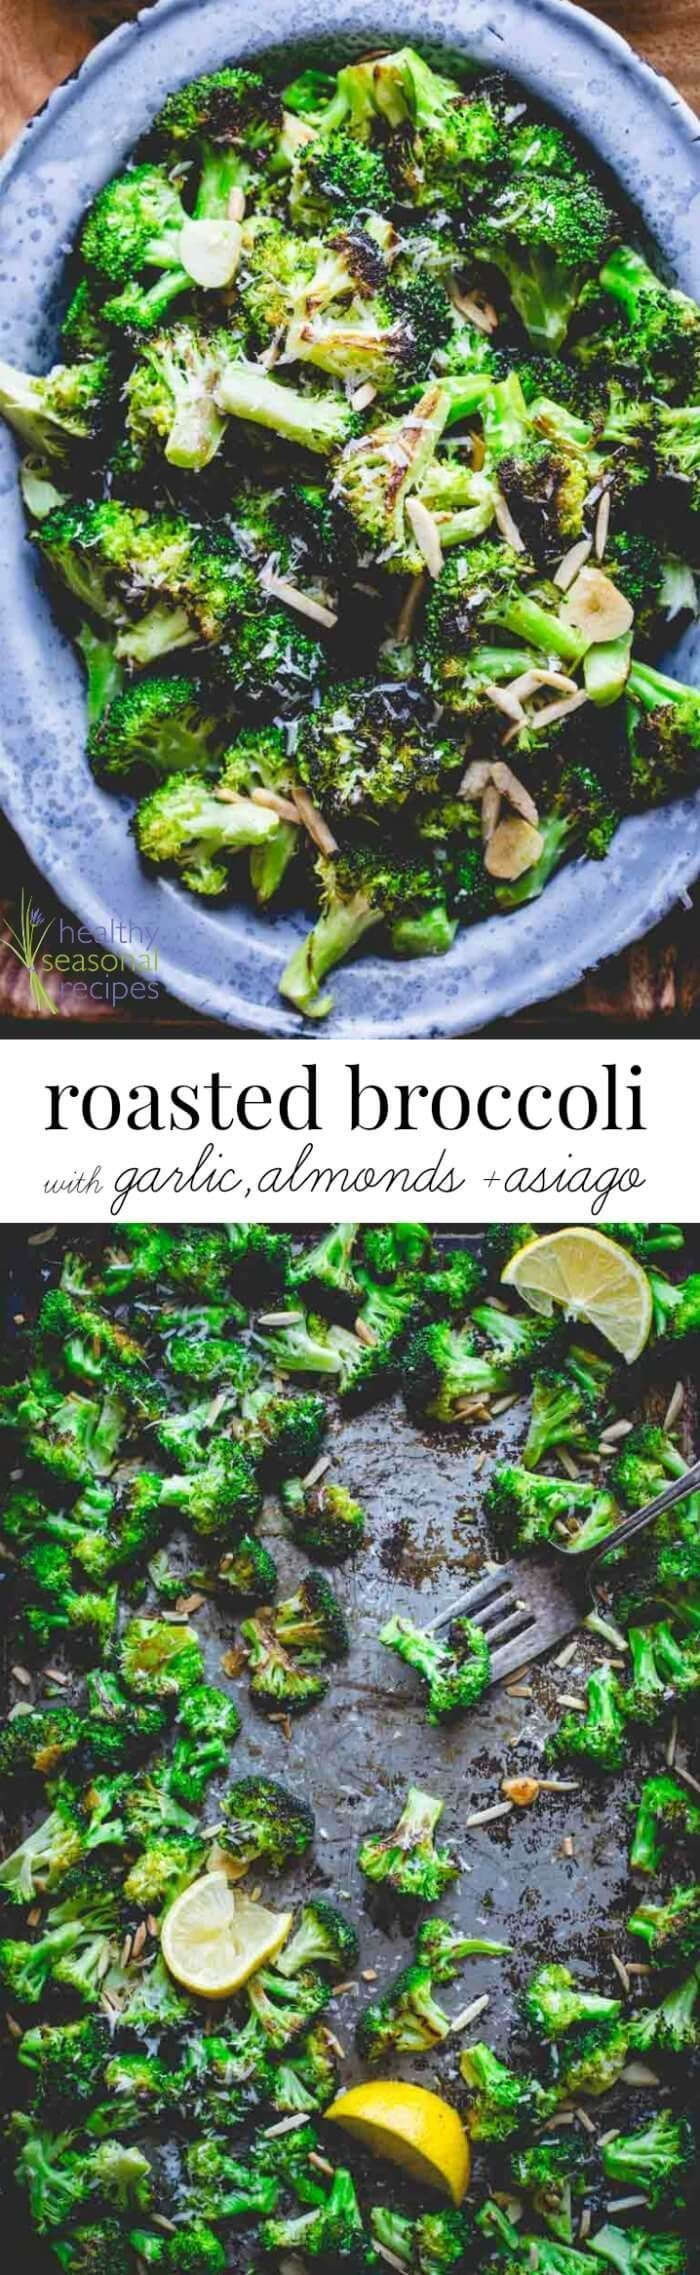 Blog post at Healthy Seasonal Recipes : Do you roastyour veggies? If not, then stop what you are doing right now and make this Roasted Broccoli with Asiago, Garlic and Almonds!! [..]